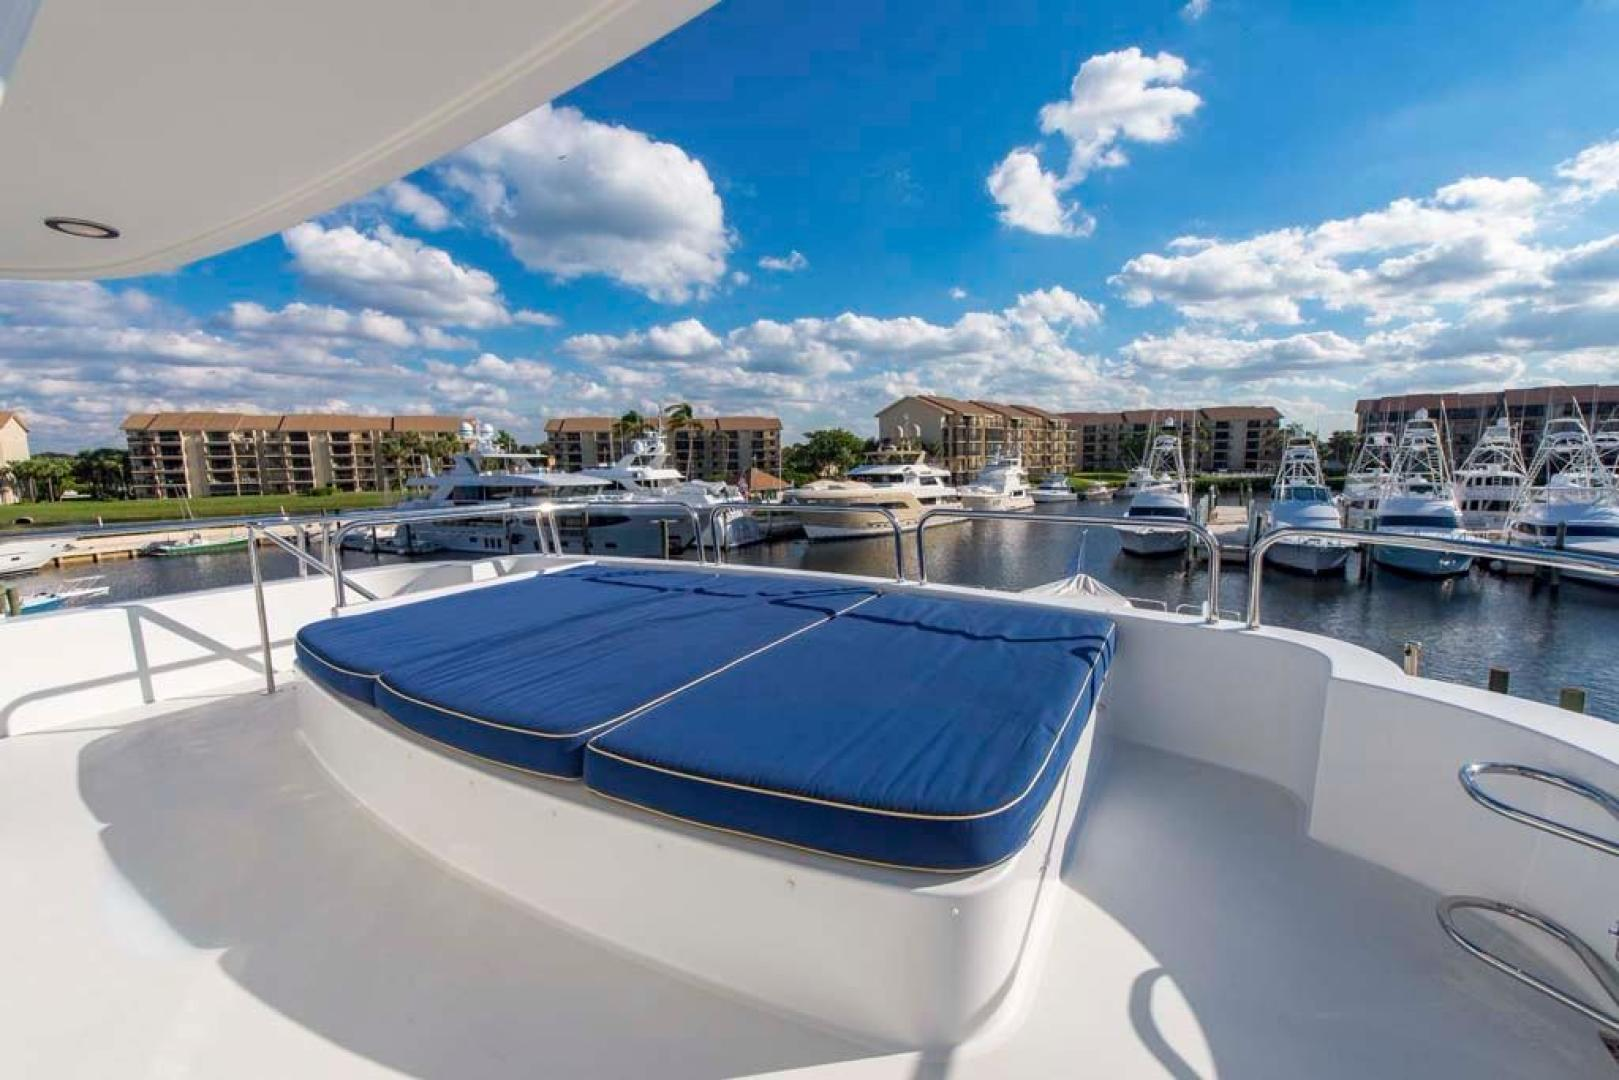 Westport-Tri-Deck-2003-Vision-Jupiter-Florida-United-States-Top-Deck-370731